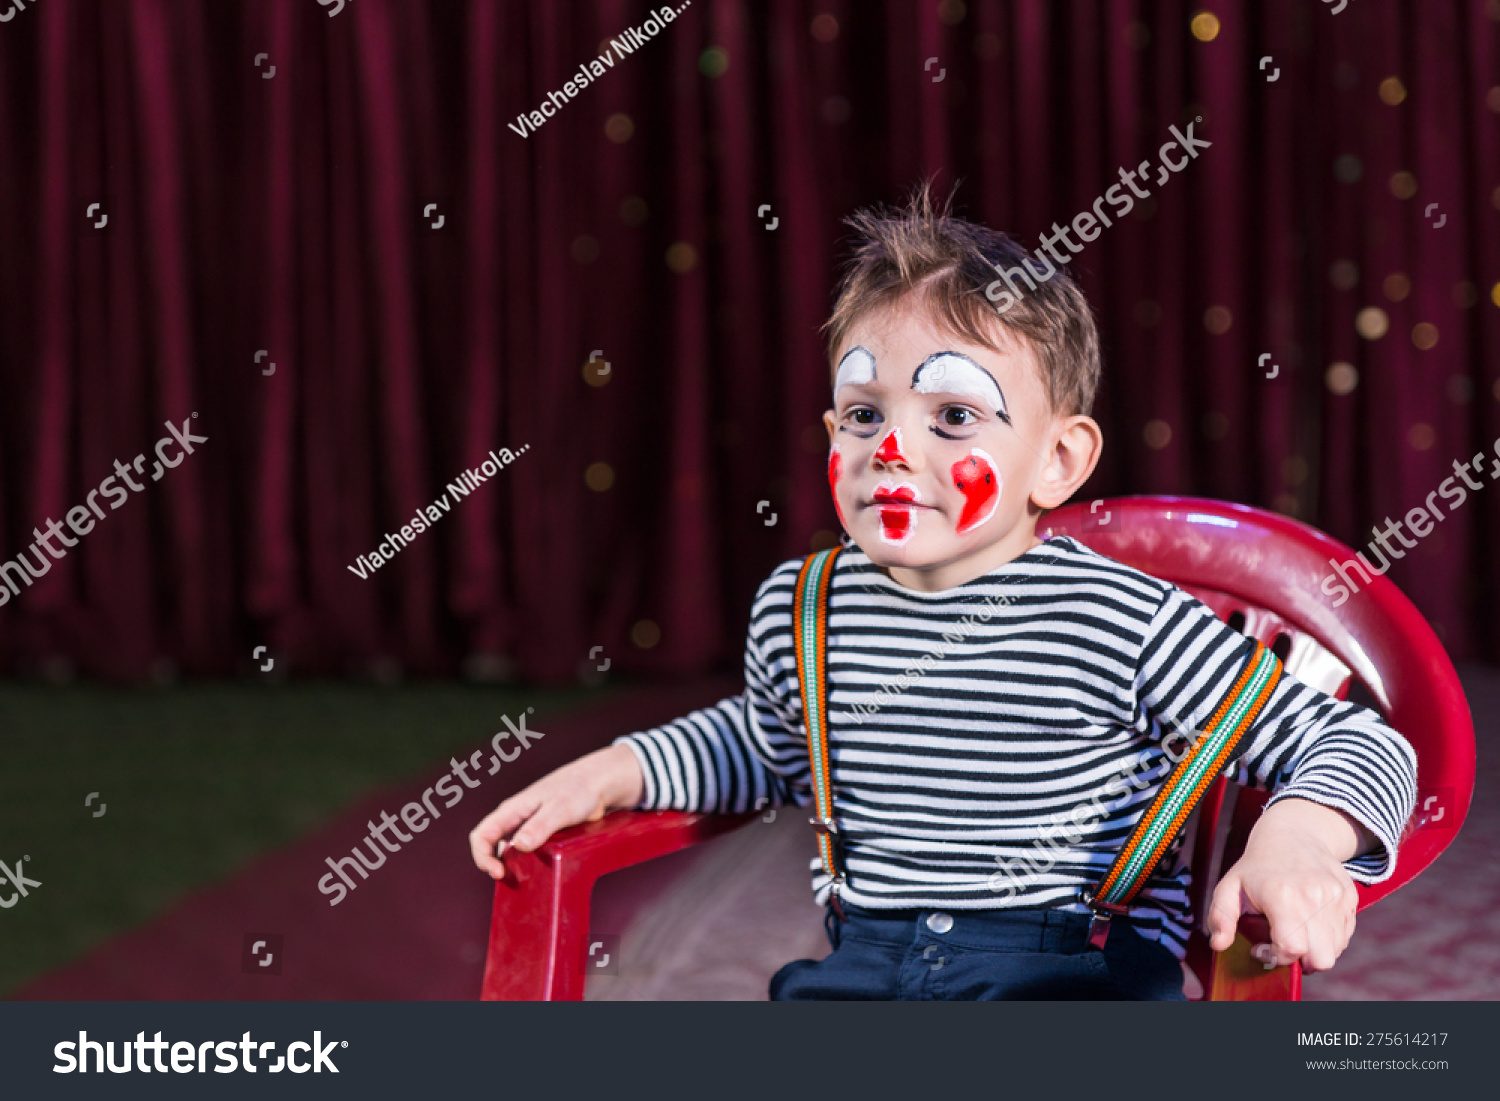 Cute kid with entertaining skills and clown make-up wearing striped long sleeve shirt and